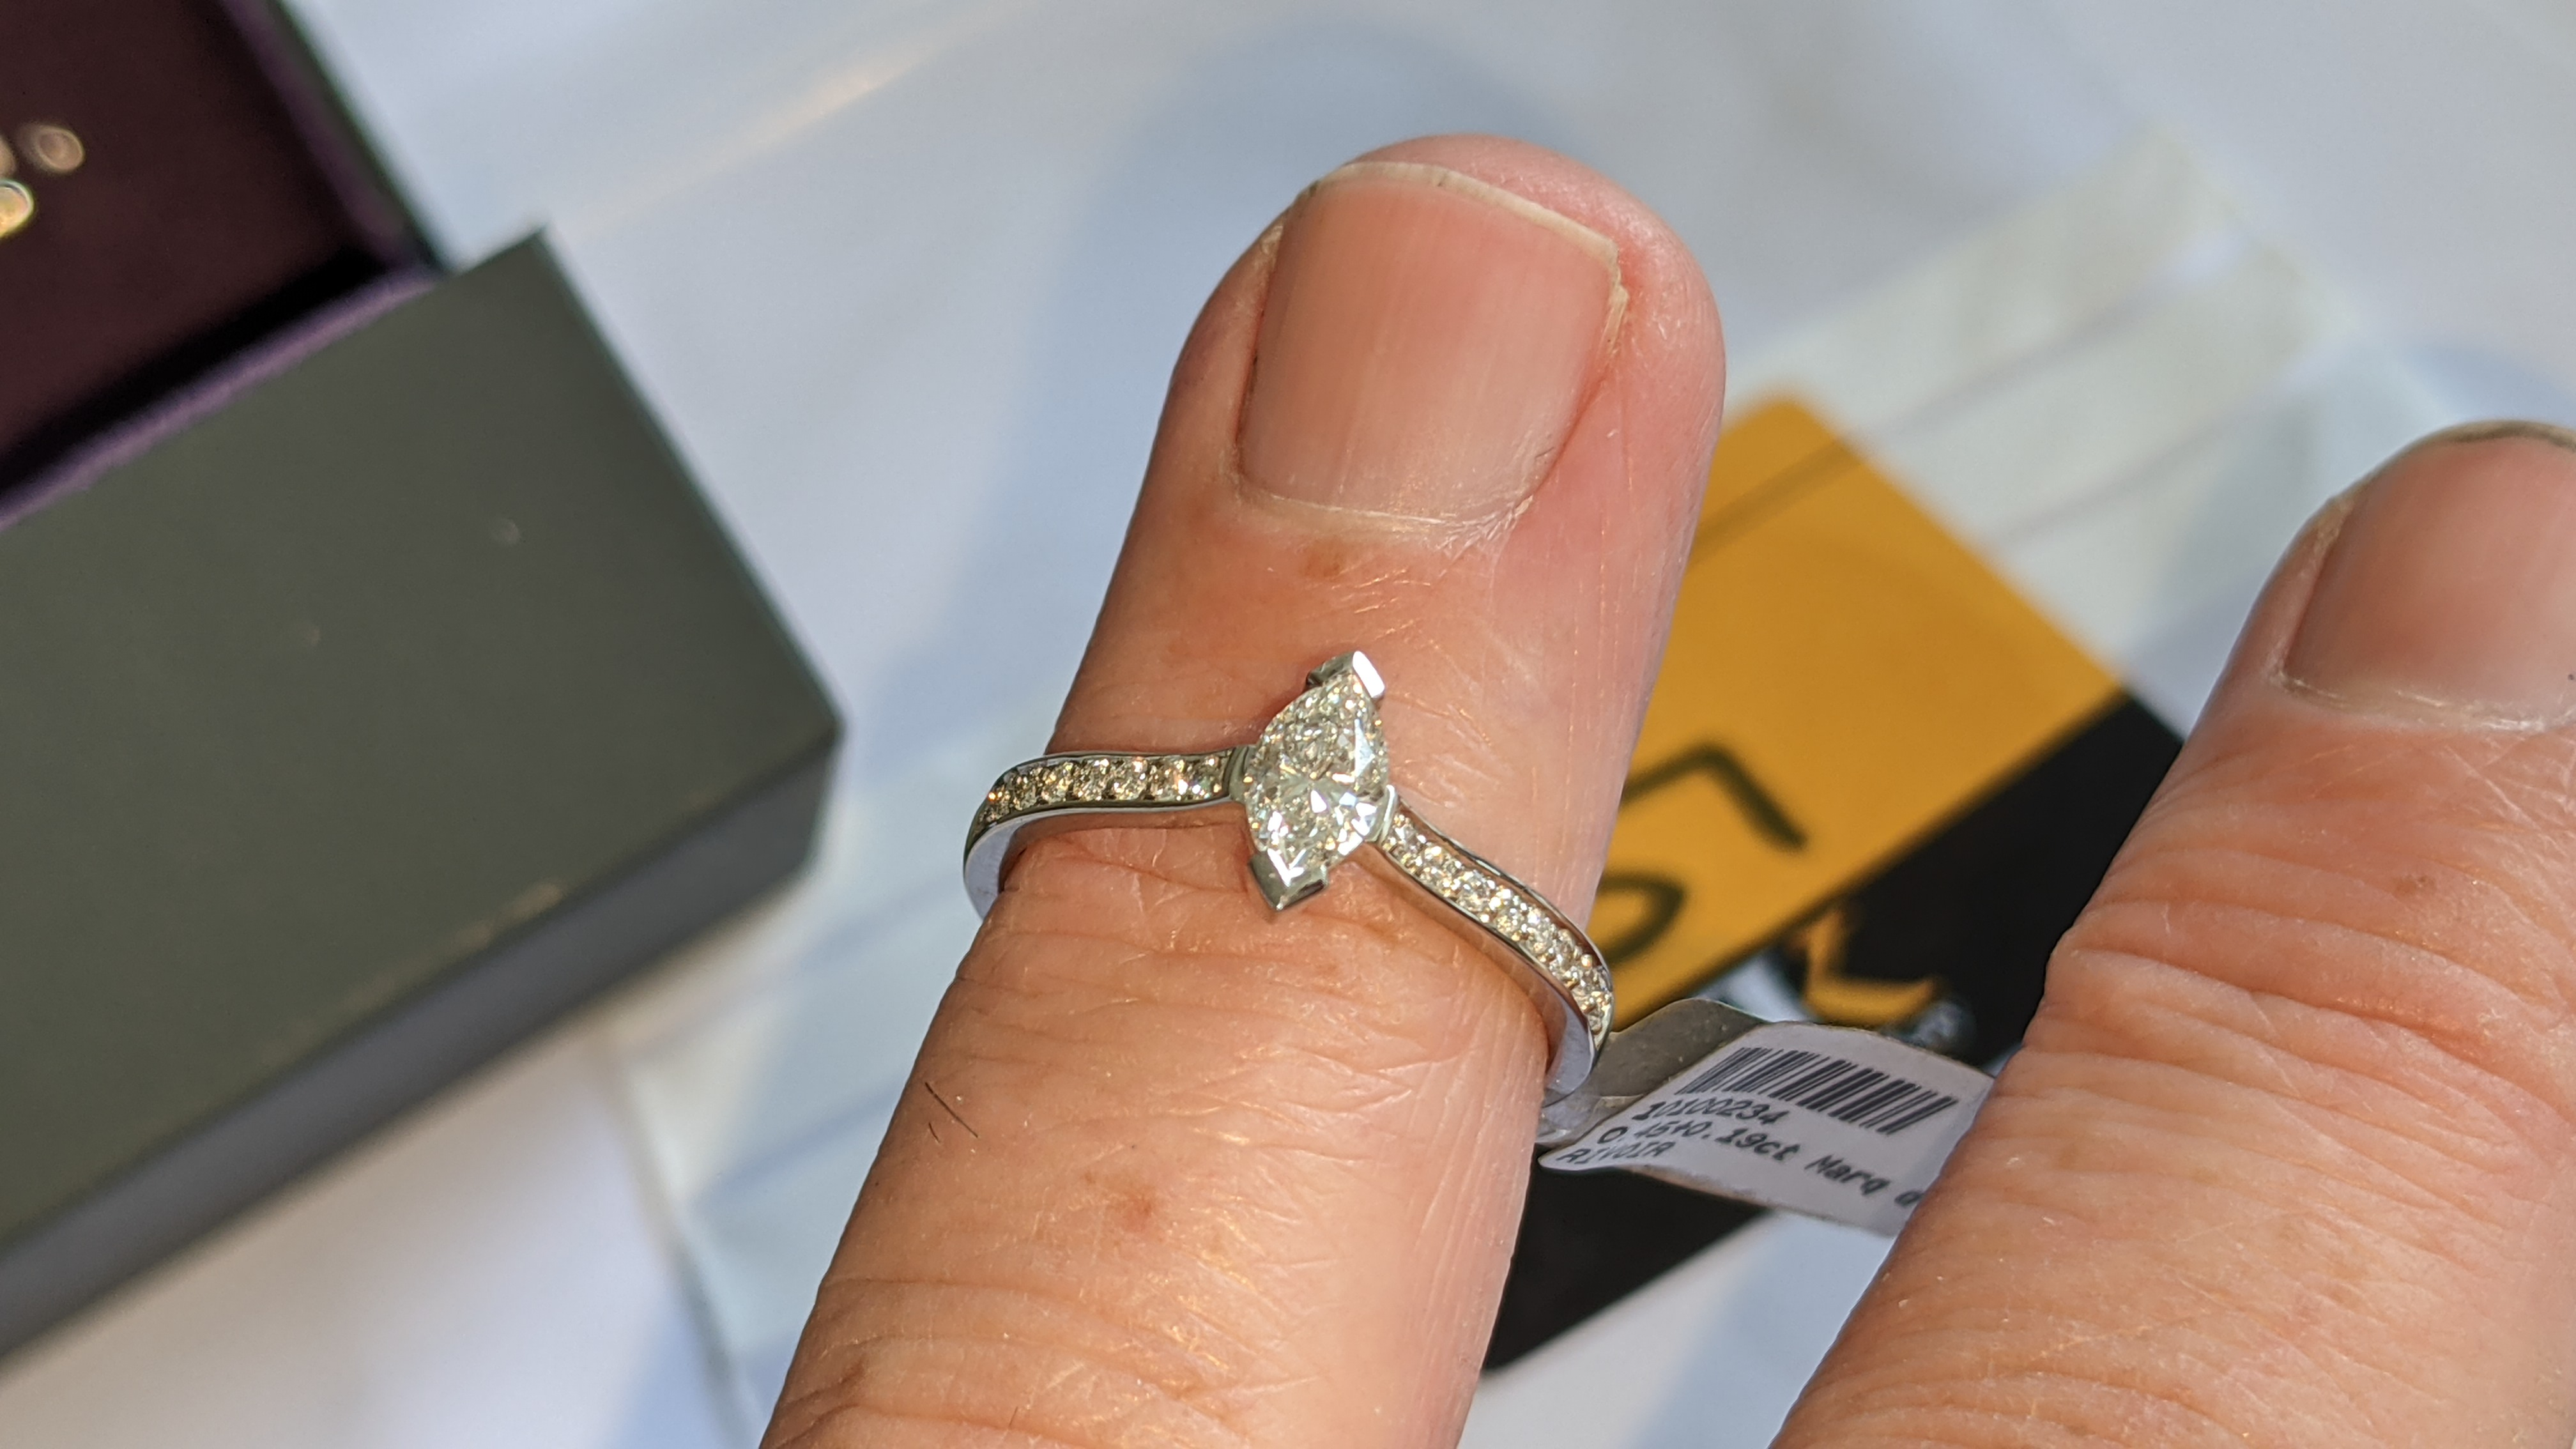 Platinum 950 ring with marquise shaped central diamond plus diamonds on the shoulders either side, t - Image 16 of 16